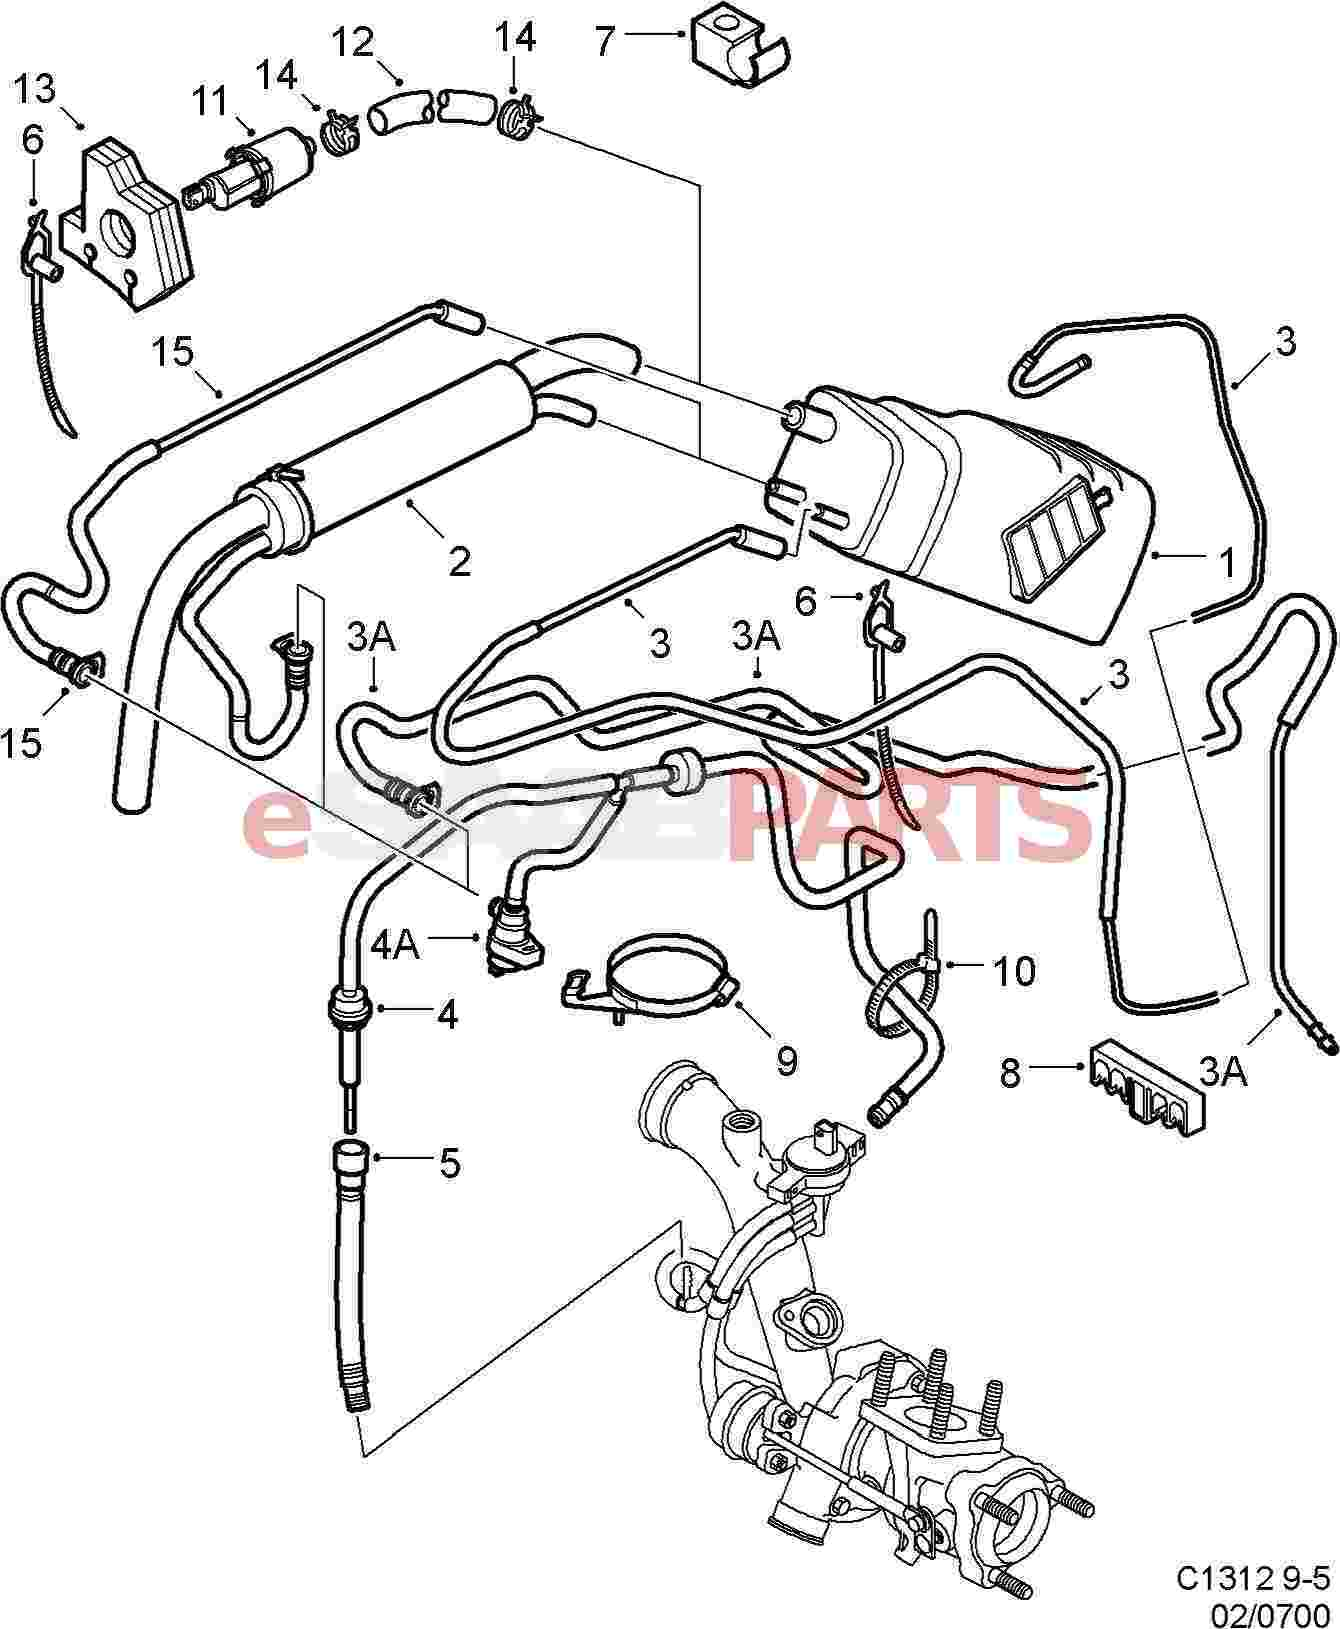 Exhaust Diagram Honda Ridgeline